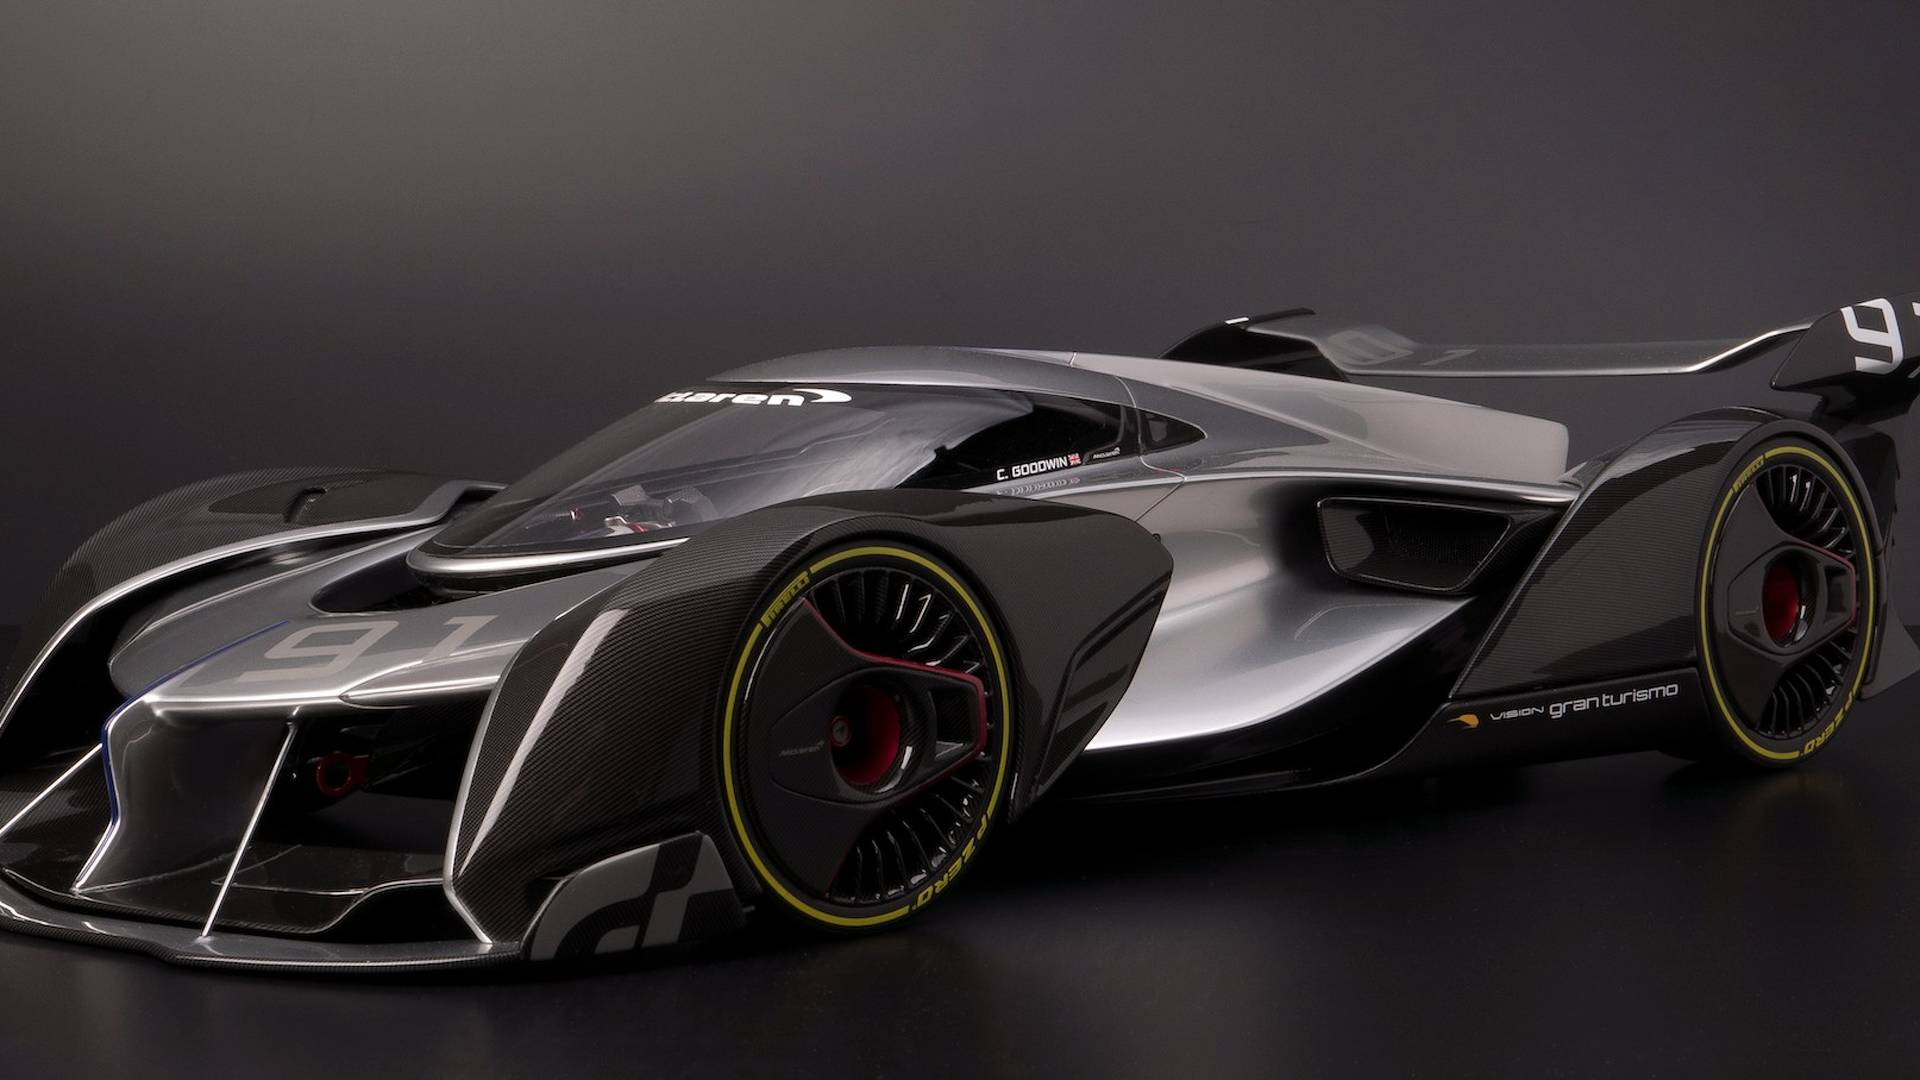 mclaren-ultimate-vision-gt-scale-model (5)